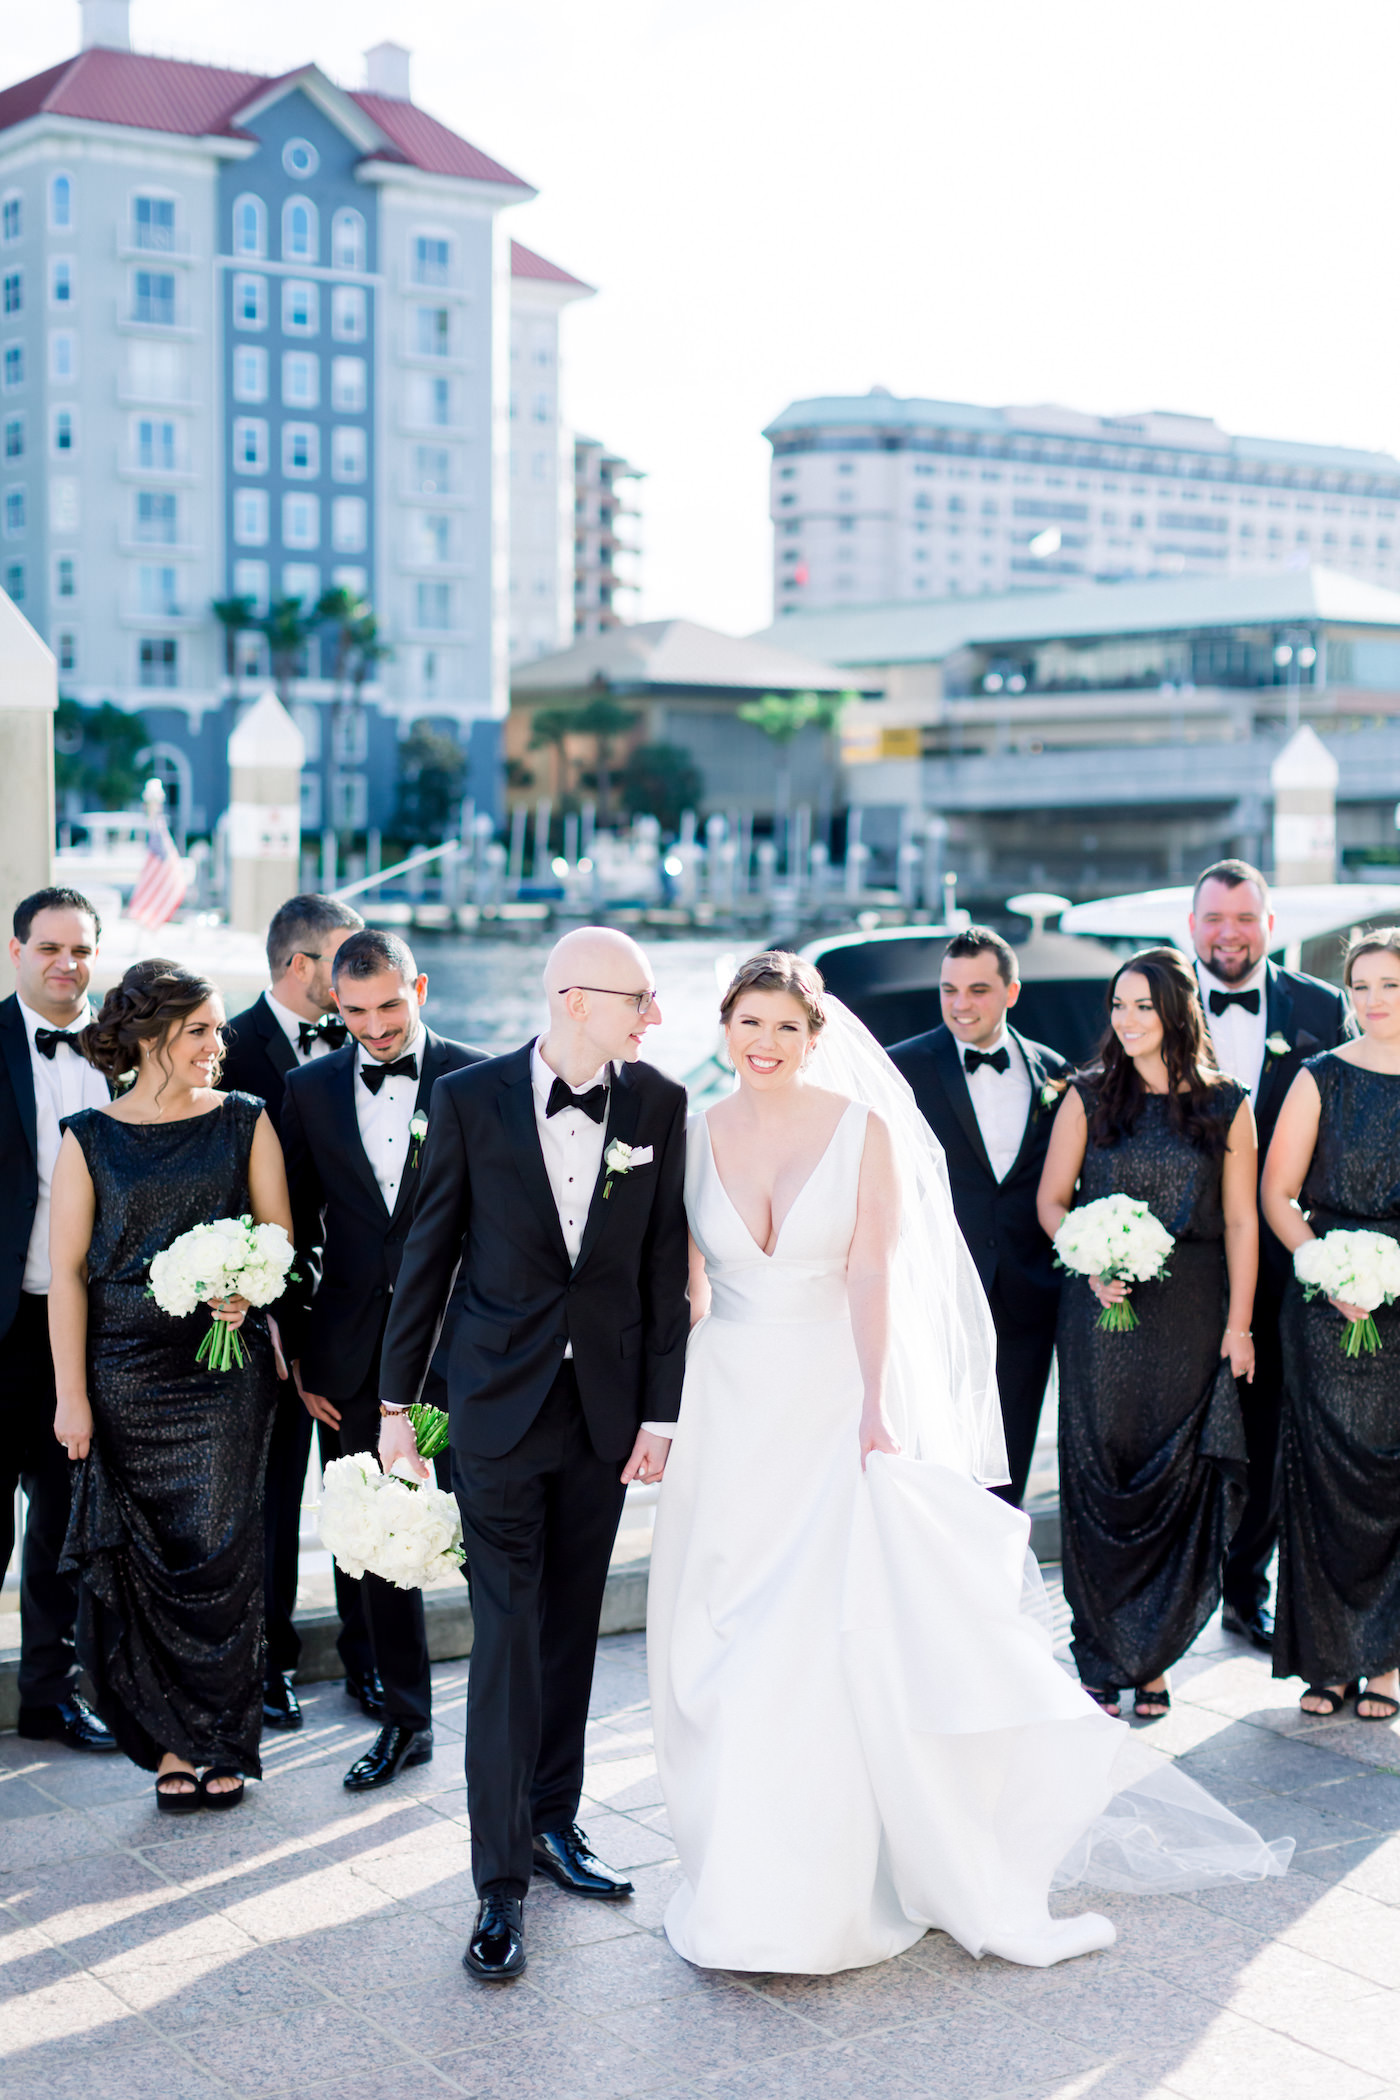 Classic Elegant Bride and Groom with Wedding Party in Black Tie Attire | Wedding Photographer Shauna and Jordon Photography | Wedding Planner UNIQUE Weddings + Events | Tampa Bay Wedding Hair and Makeup Femme Akoi Beauty Studio